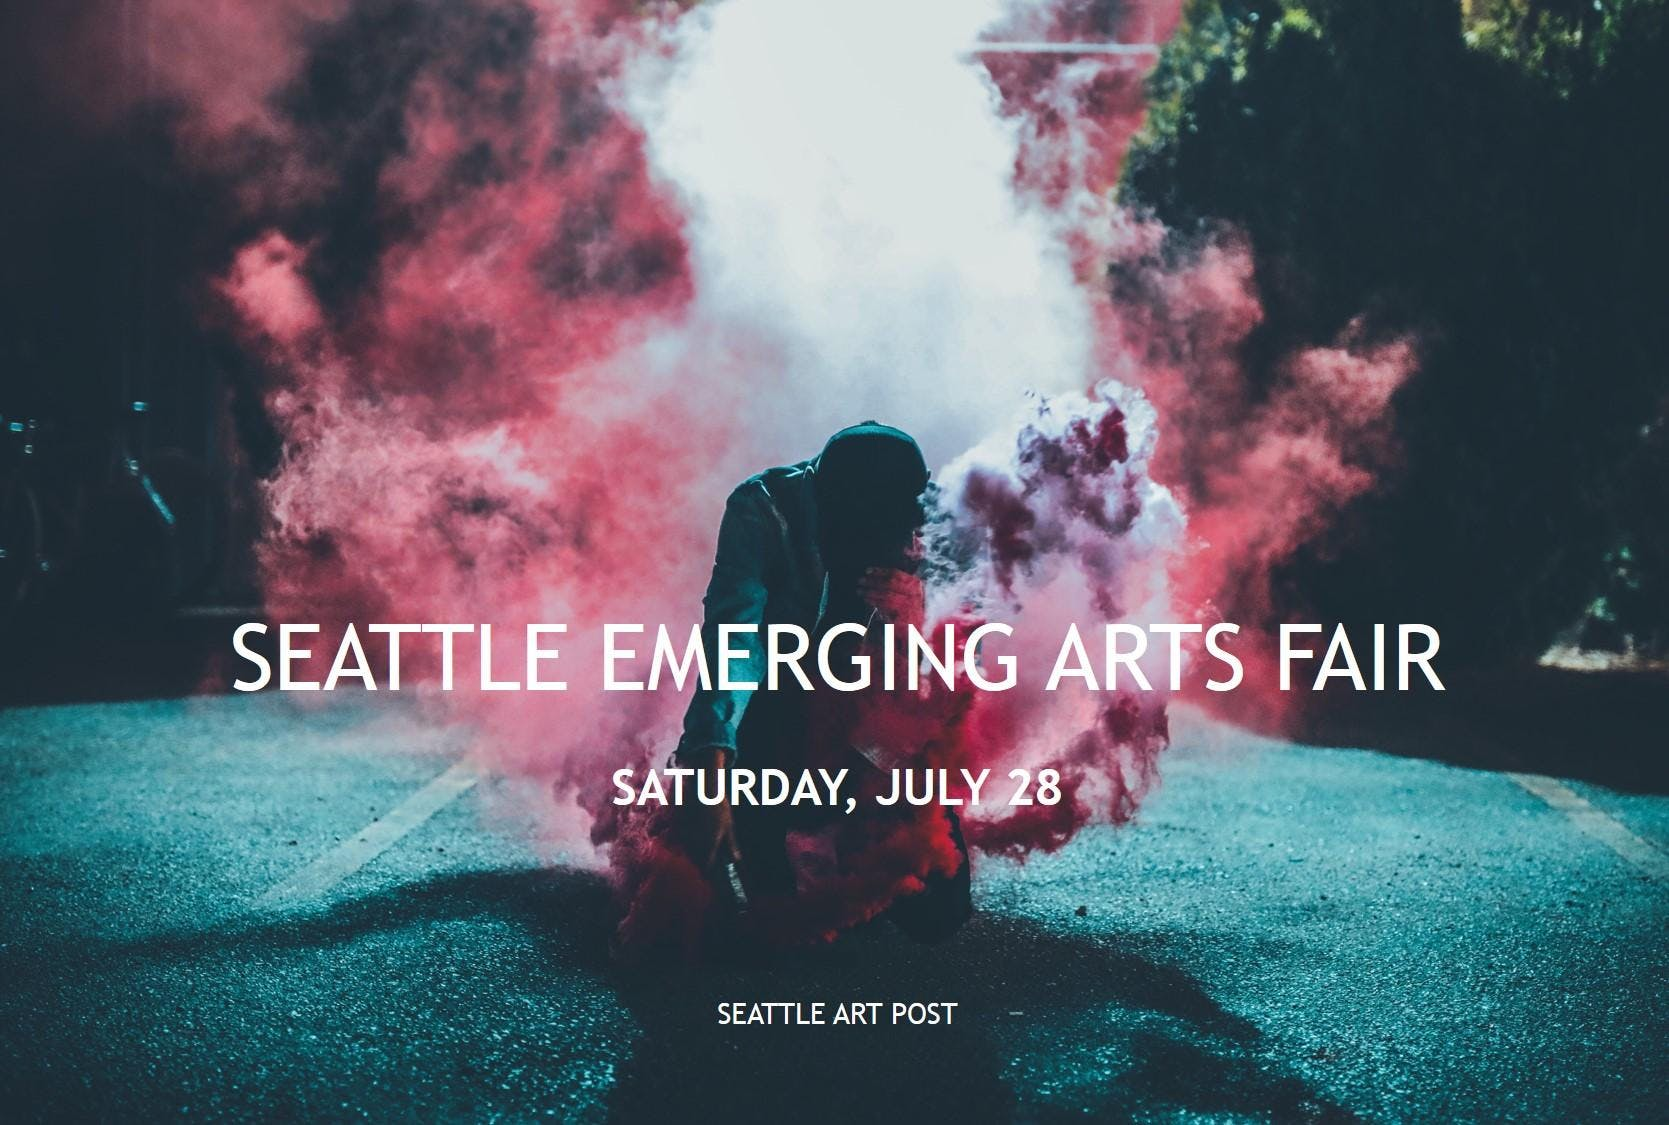 Seattle Emerging Arts Fair    A Pop Up Group Exhibition